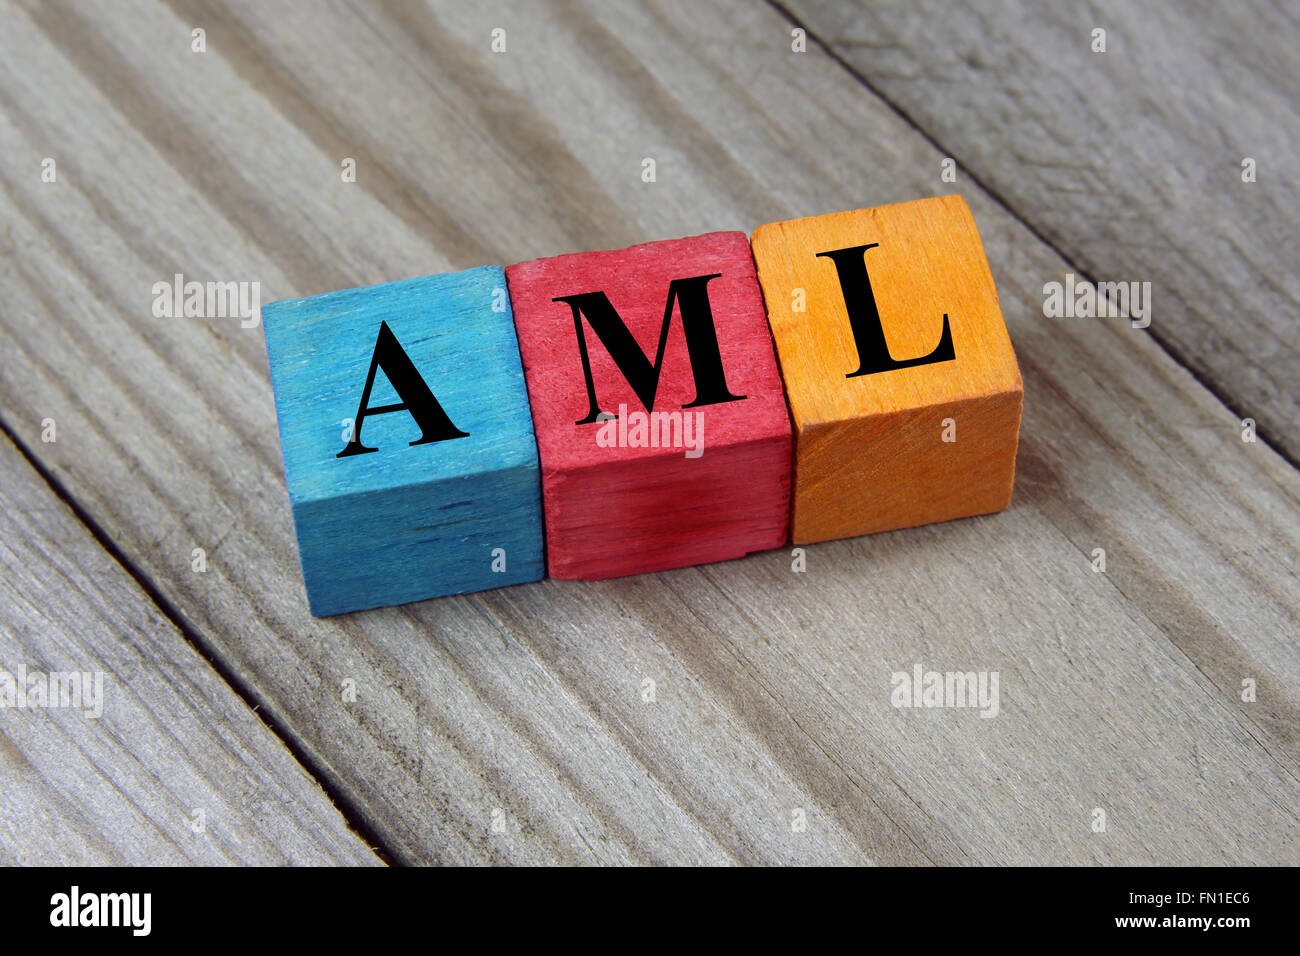 AML ( Acute Myeloid Leukemia) acronym on colorful wooden cubes - Stock Image